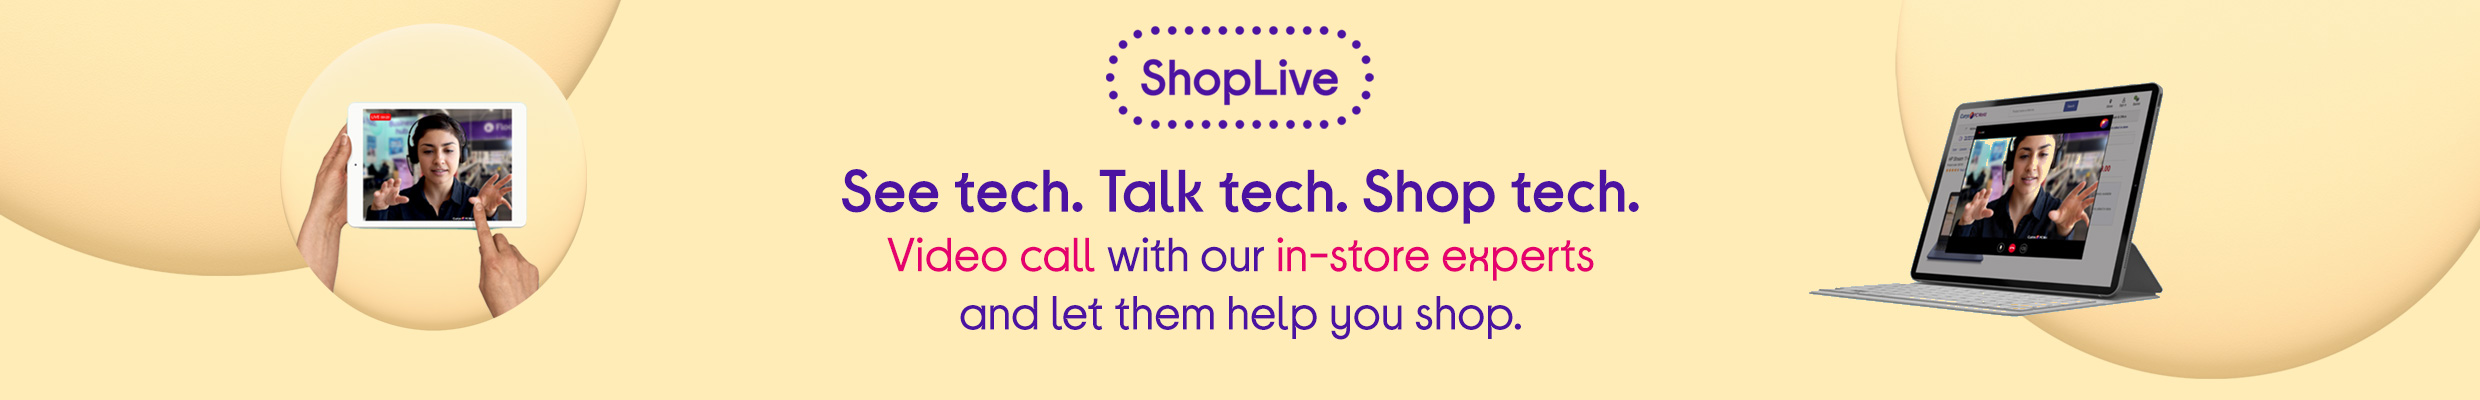 ShopLive - Chat to our experts